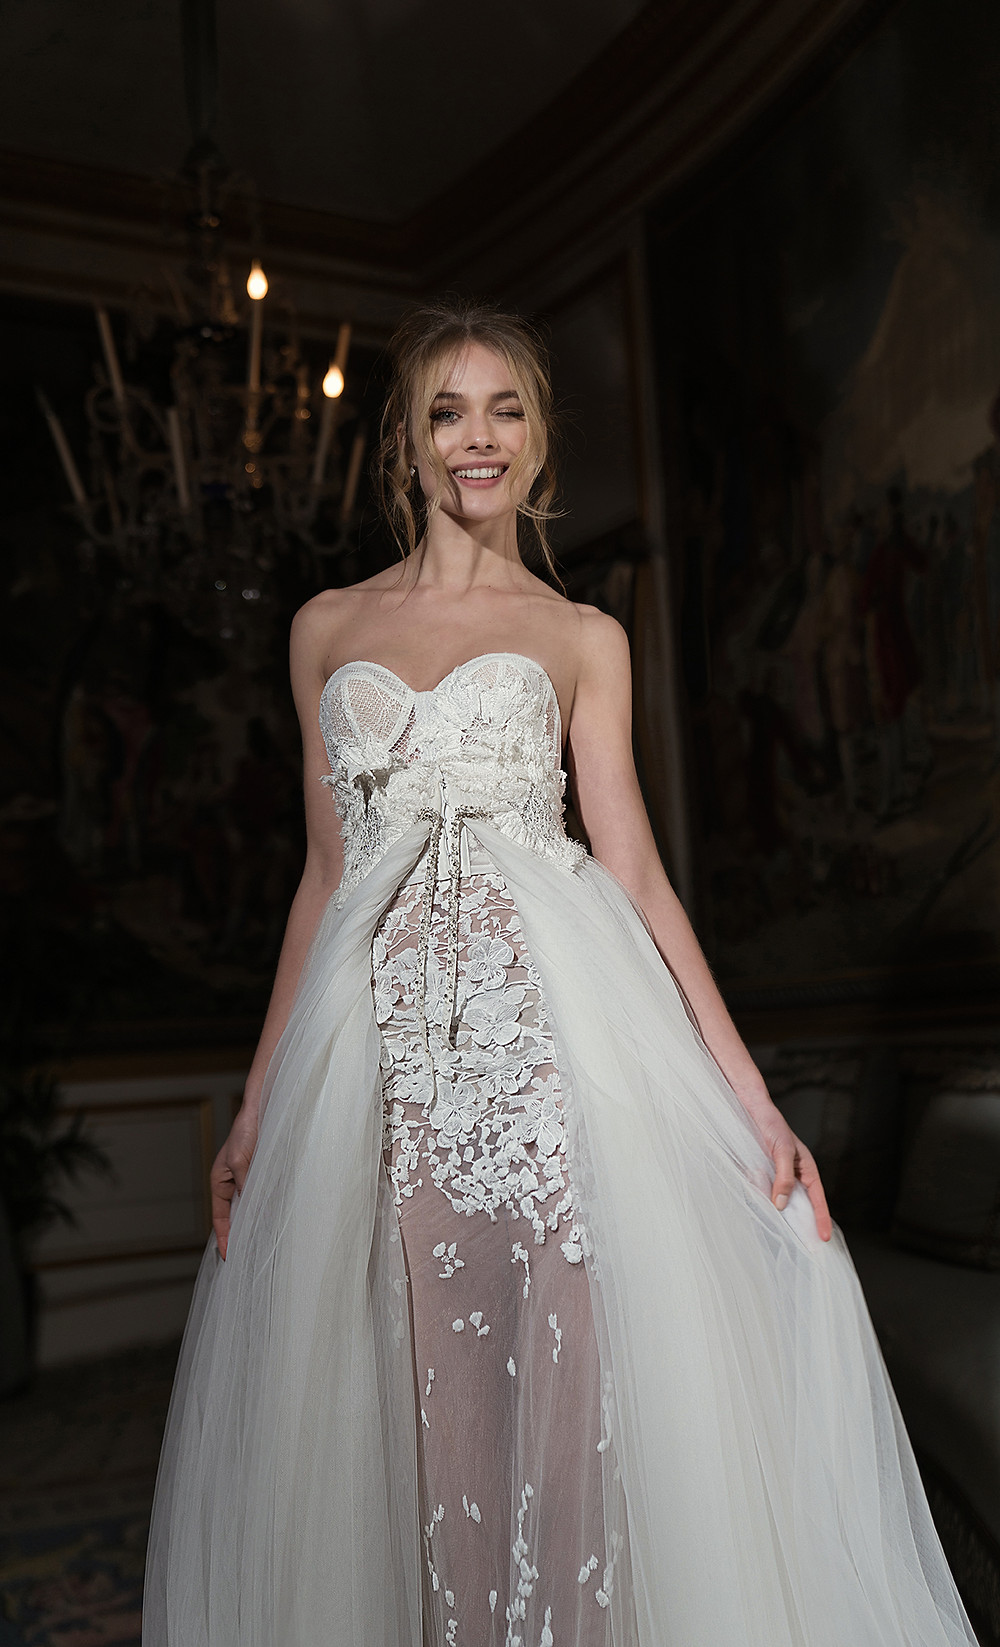 Weddinspired | 50+ Detachable Skirt Wedding Dresses | Inbal Dror from the 2018 collection